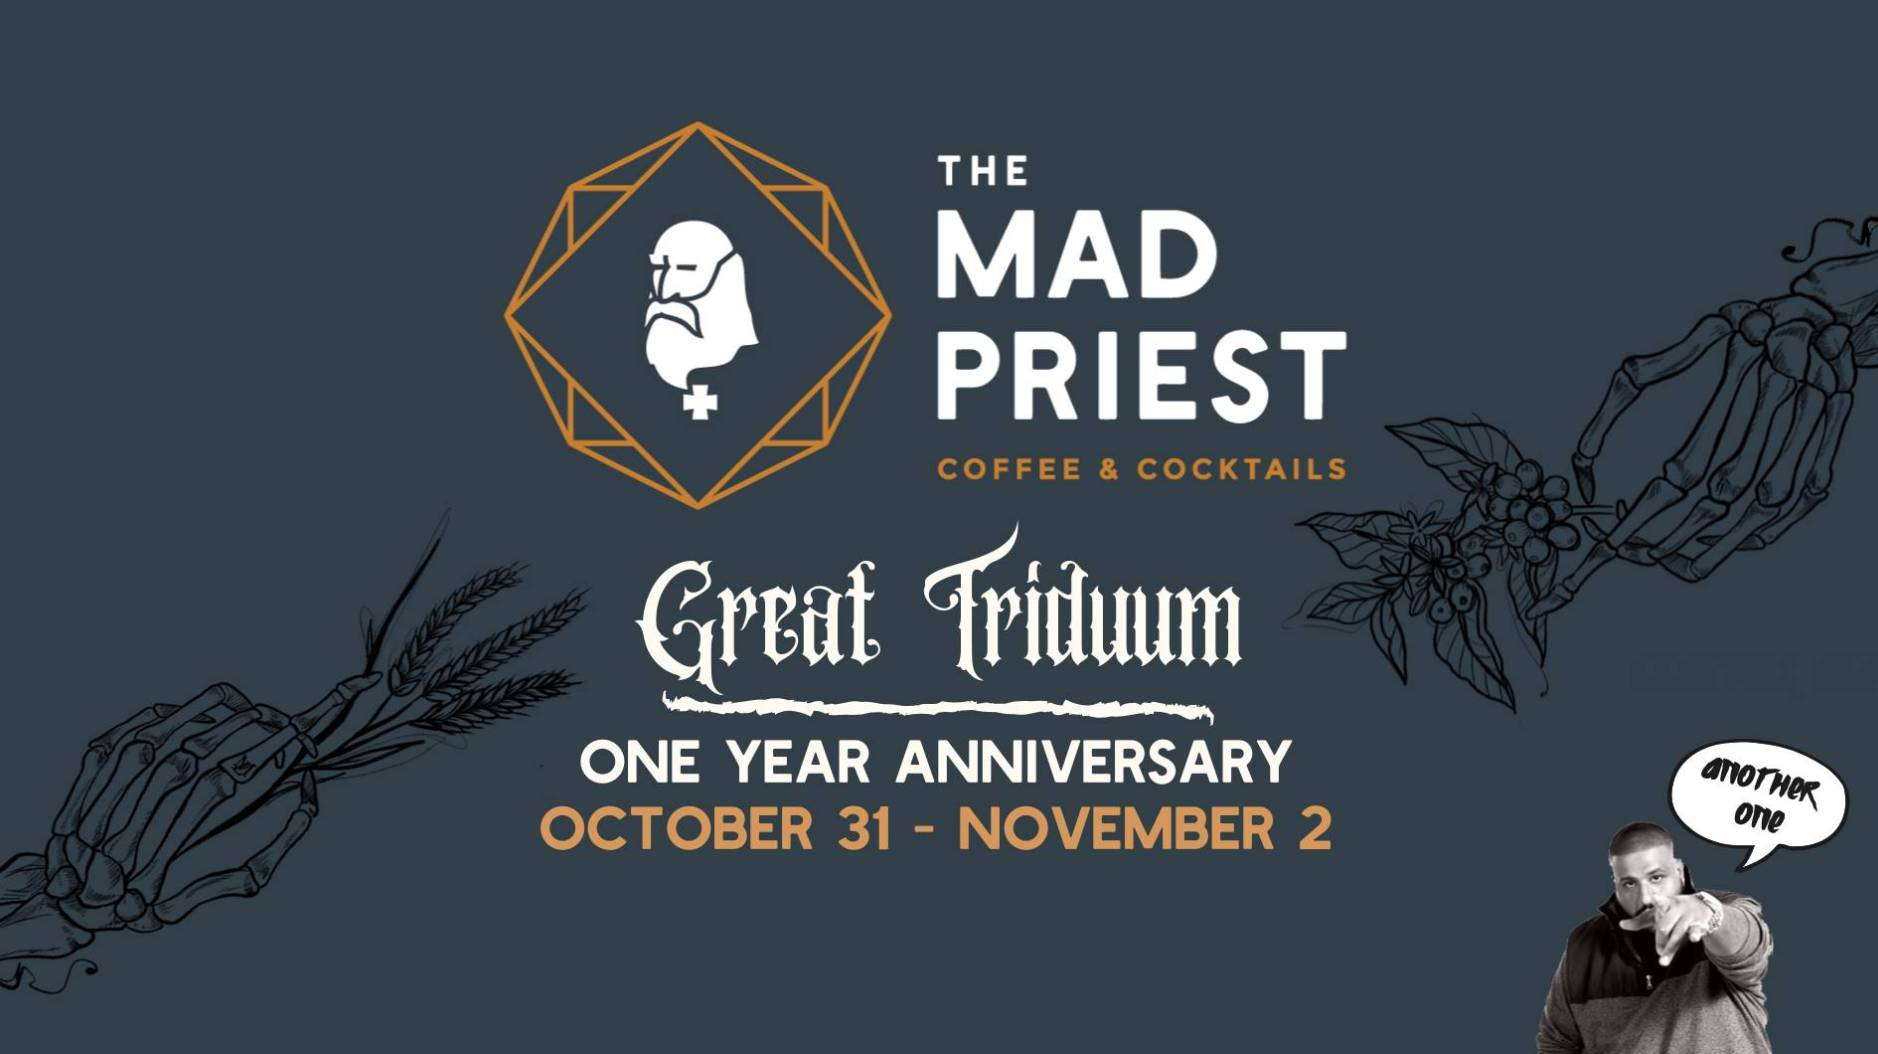 The Mad Priest Great Triduum: Another One